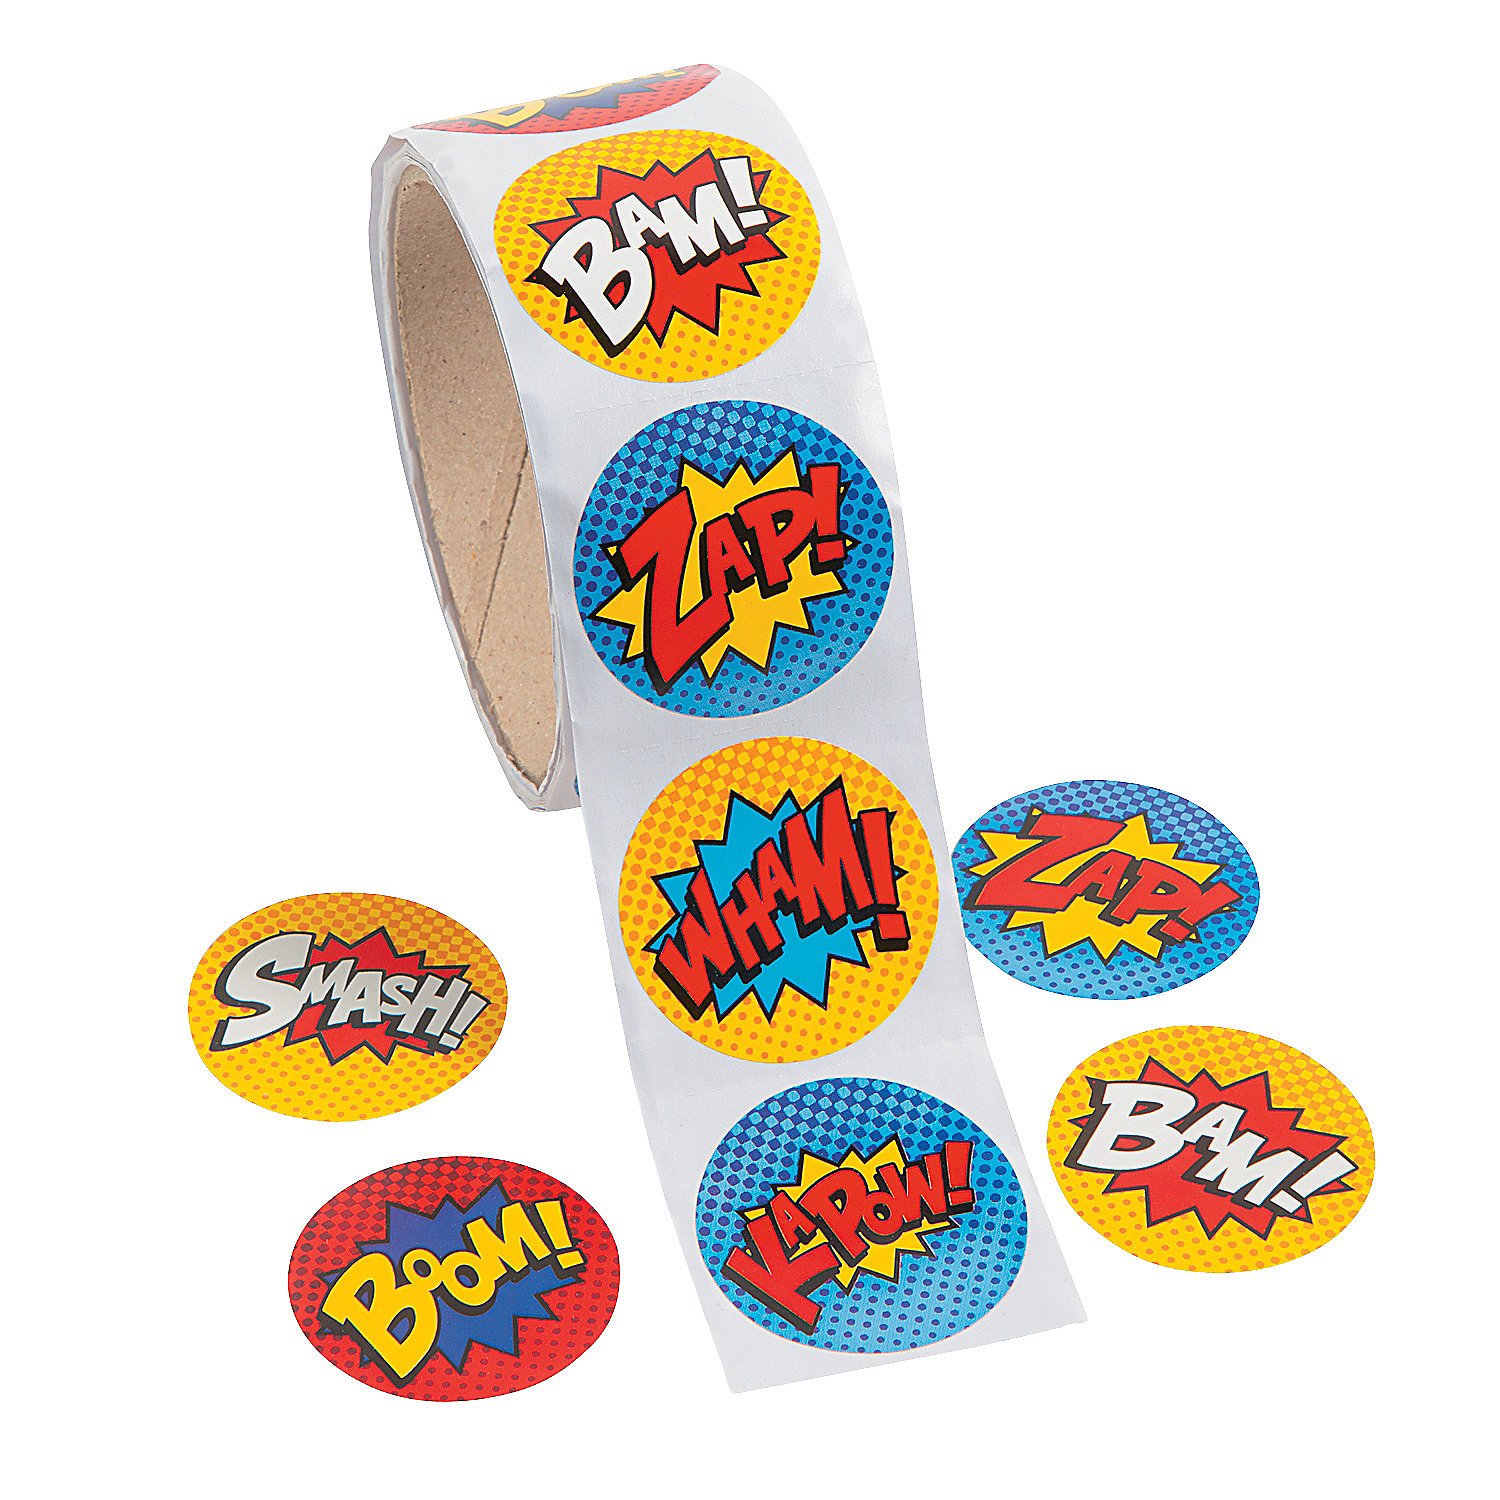 Superhero Roll Stickers  Roll Of 100 Partypaloozam. Education Manual Signs Of Stroke. Dab Stickers. Large Vessel Signs. Mustang Body Stickers. Adventure 1190 Ktm Decals. Christmas Blog Banners. Education Event Banners. Roycastle Signs